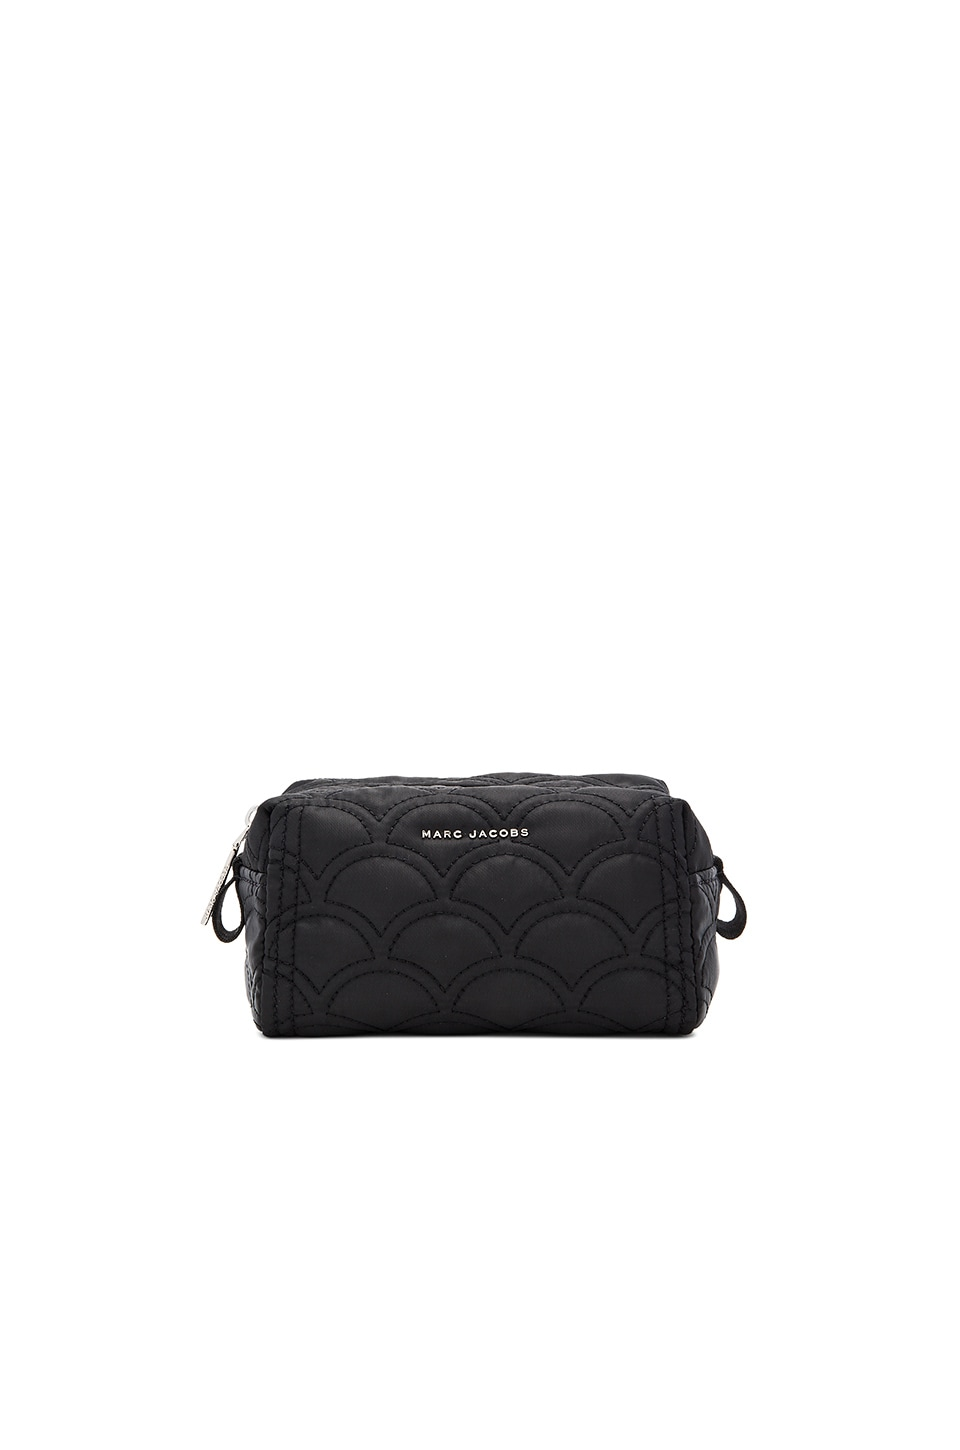 Easy Matelasse Large Cosmetic Bag by Marc Jacobs